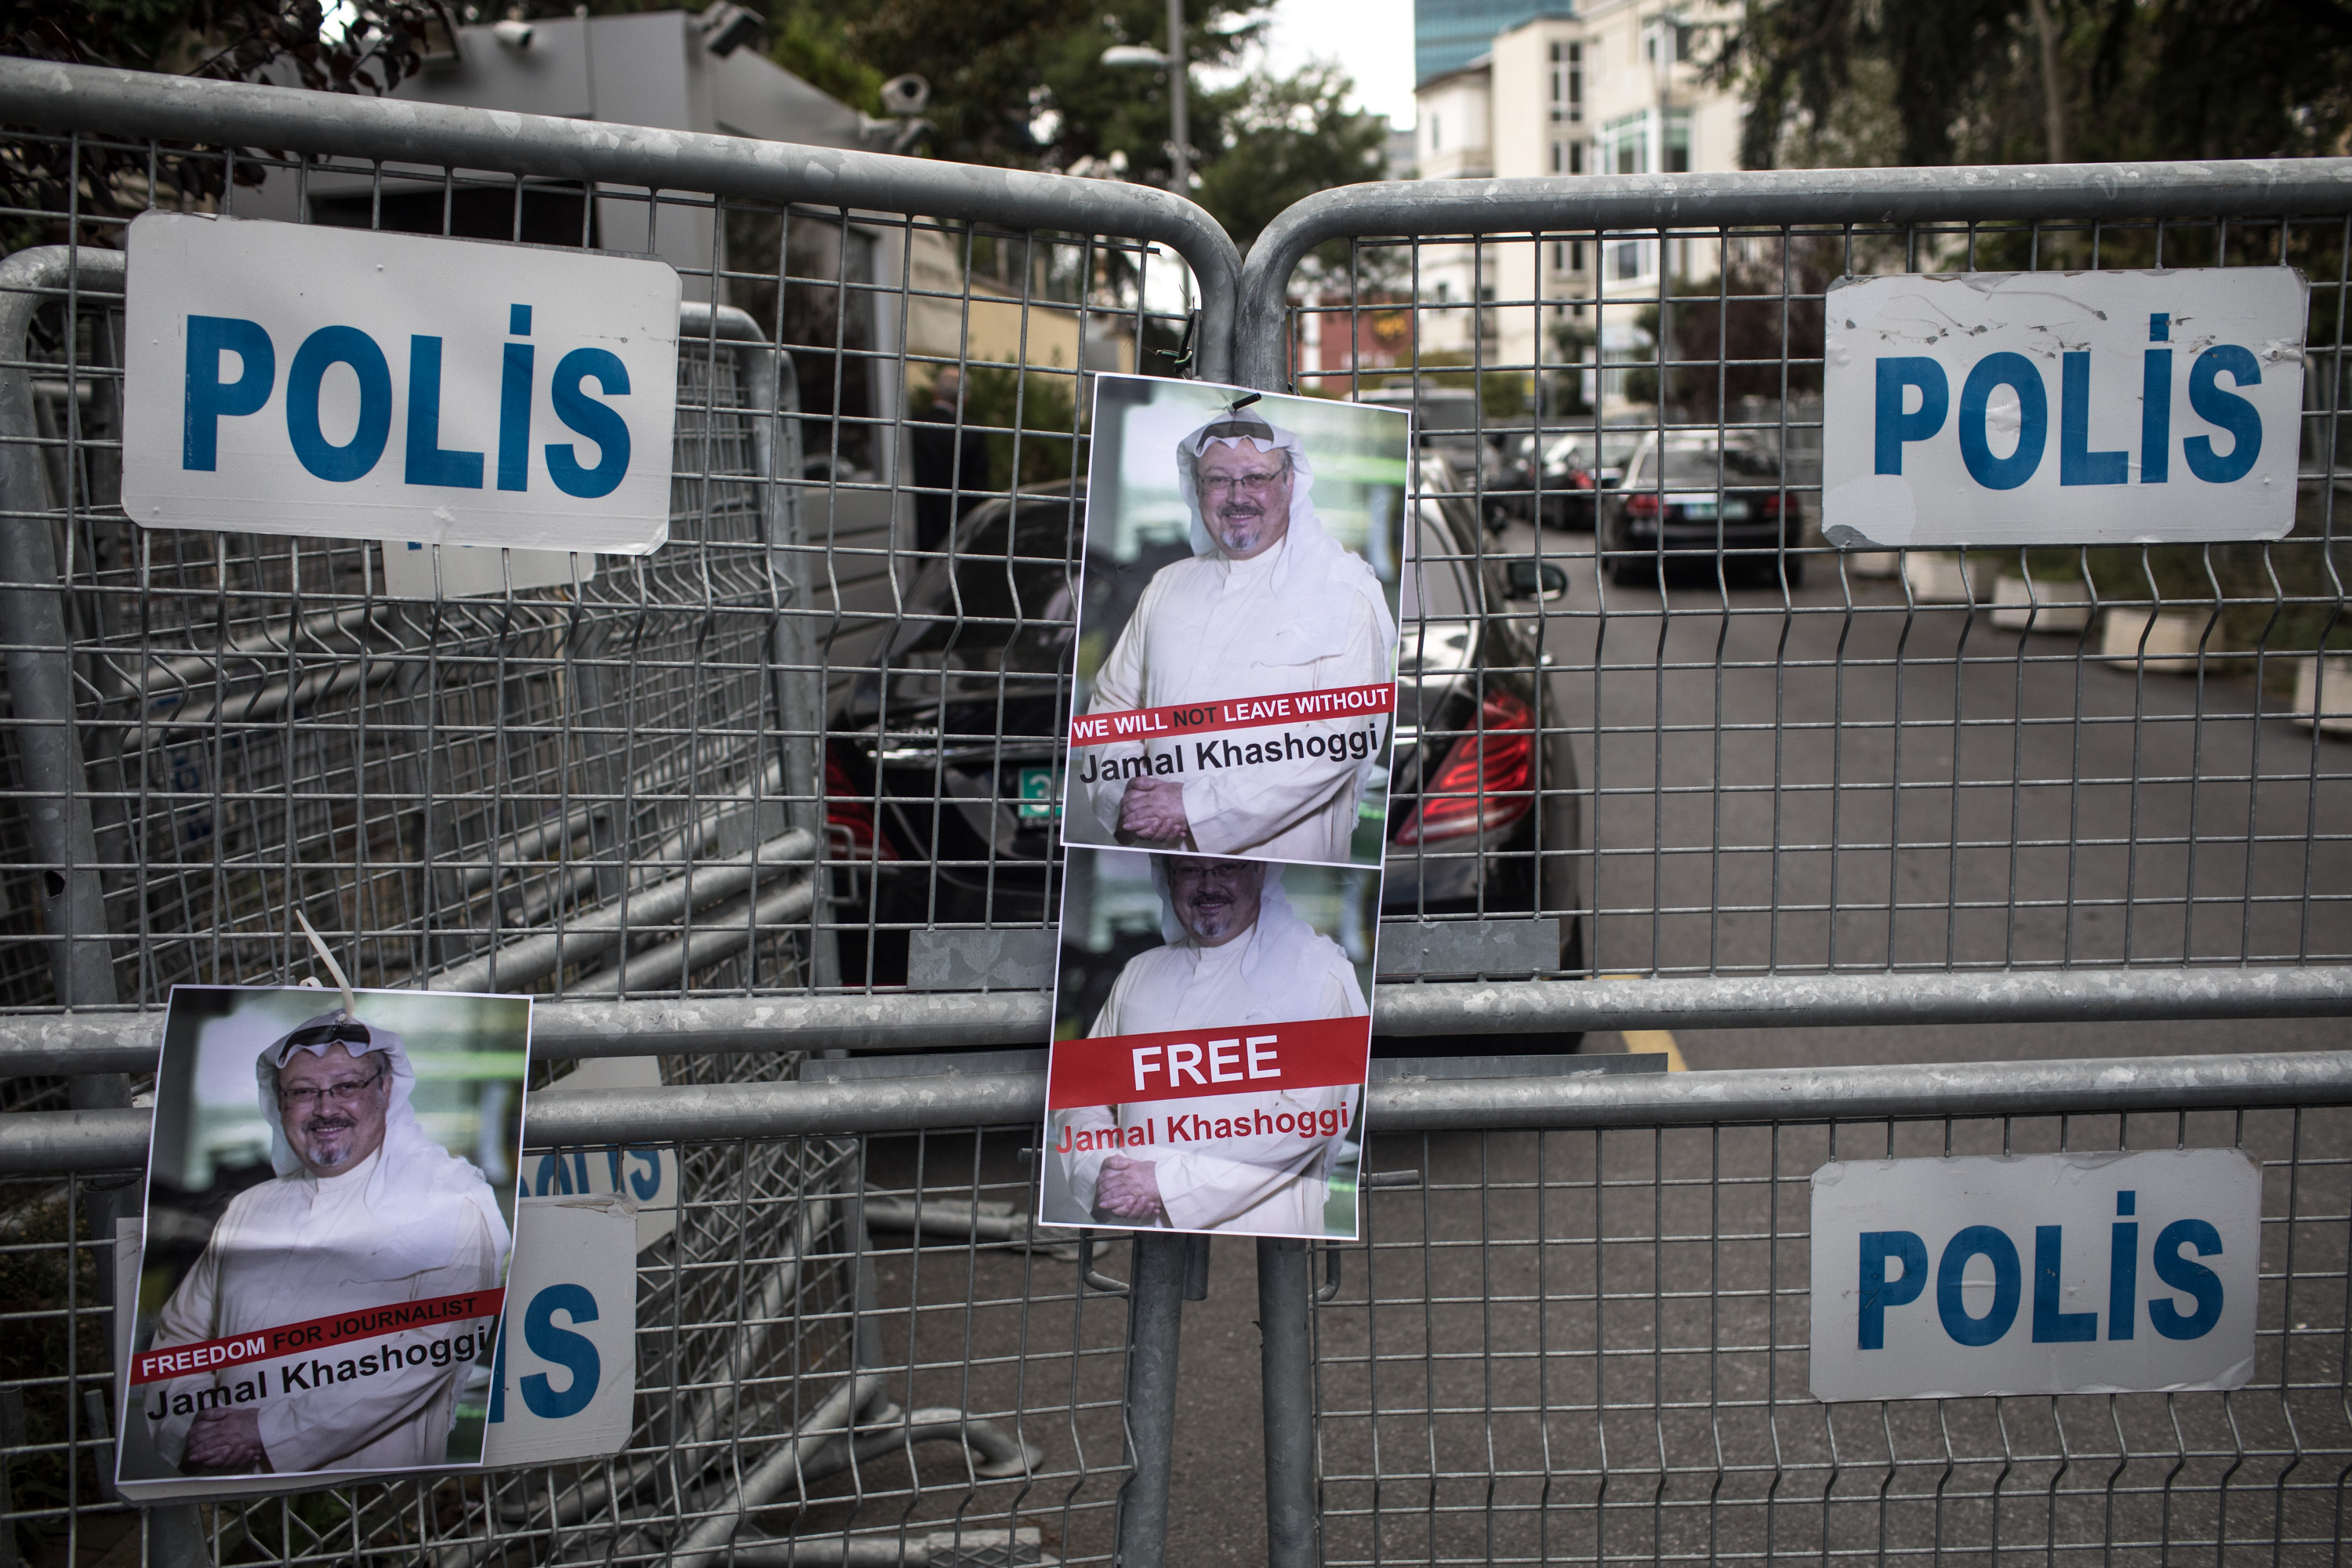 Posters of Saudi journalist Jamal Khashoggi are seen stuck to a police barricade in front of Saudi Arabia's consulate on October 8, 2018 in Istanbul, Turkey. Fears are growing over the fate of missing journalist Jamal Khashoggi after Turkish officials said they believe he was murdered inside the Saudi consulate. Saudi consulate officials have said that missing writer and Saudi critic Jamal Khashoggi went missing after leaving the consulate, however the statement directly contradicts other sources including Turkish officials. Jamal Khashoggi a Saudi writer critical of the Kingdom and a contributor to the Washington Post was living in self-imposed exile in the U.S.